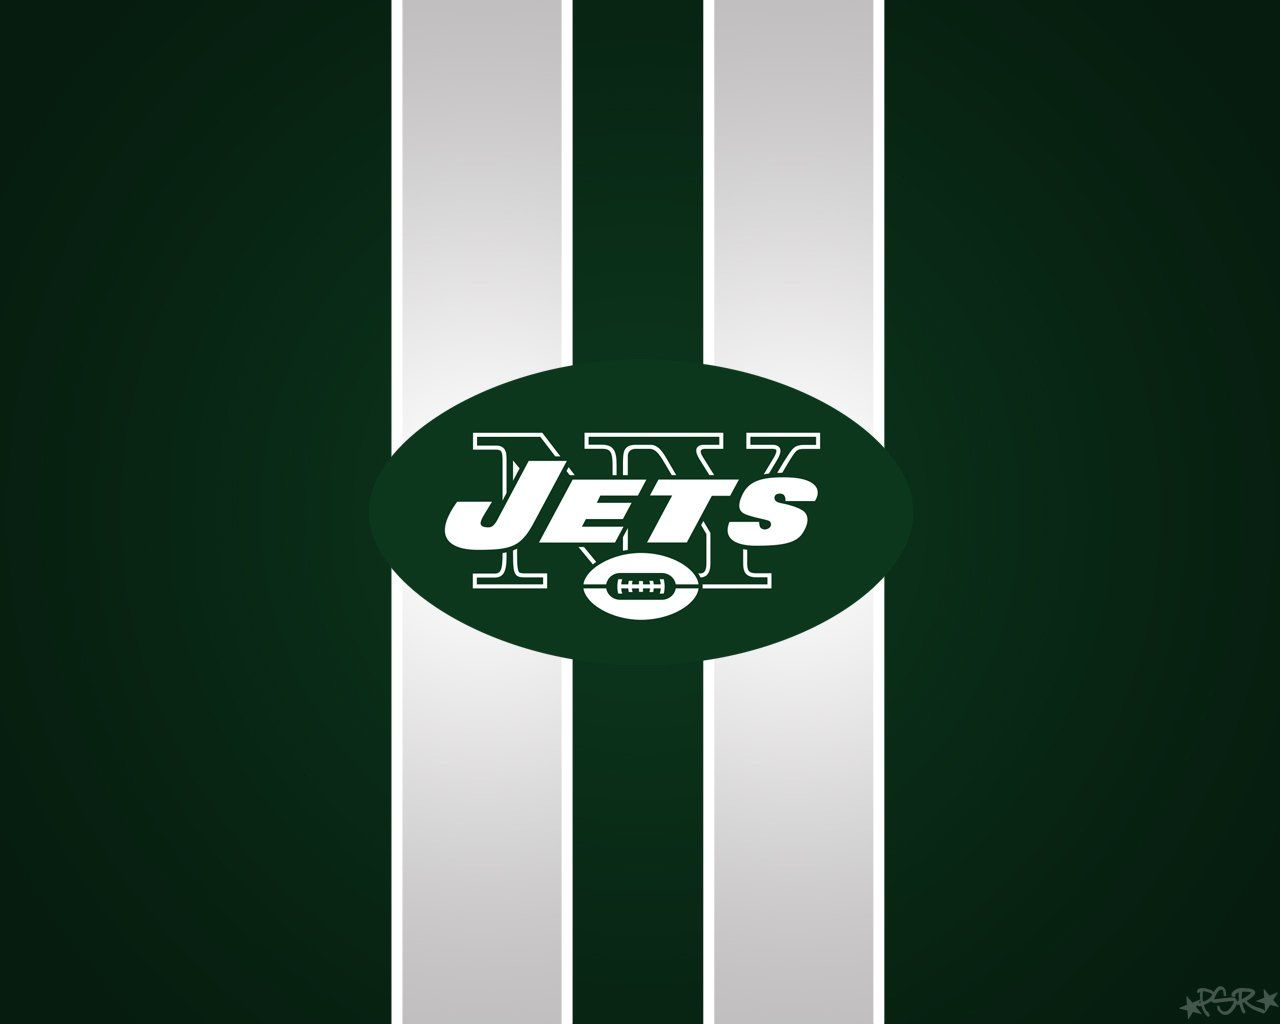 70 New York Jets Hd Wallpapers Backgrounds Wallpaper Abyss